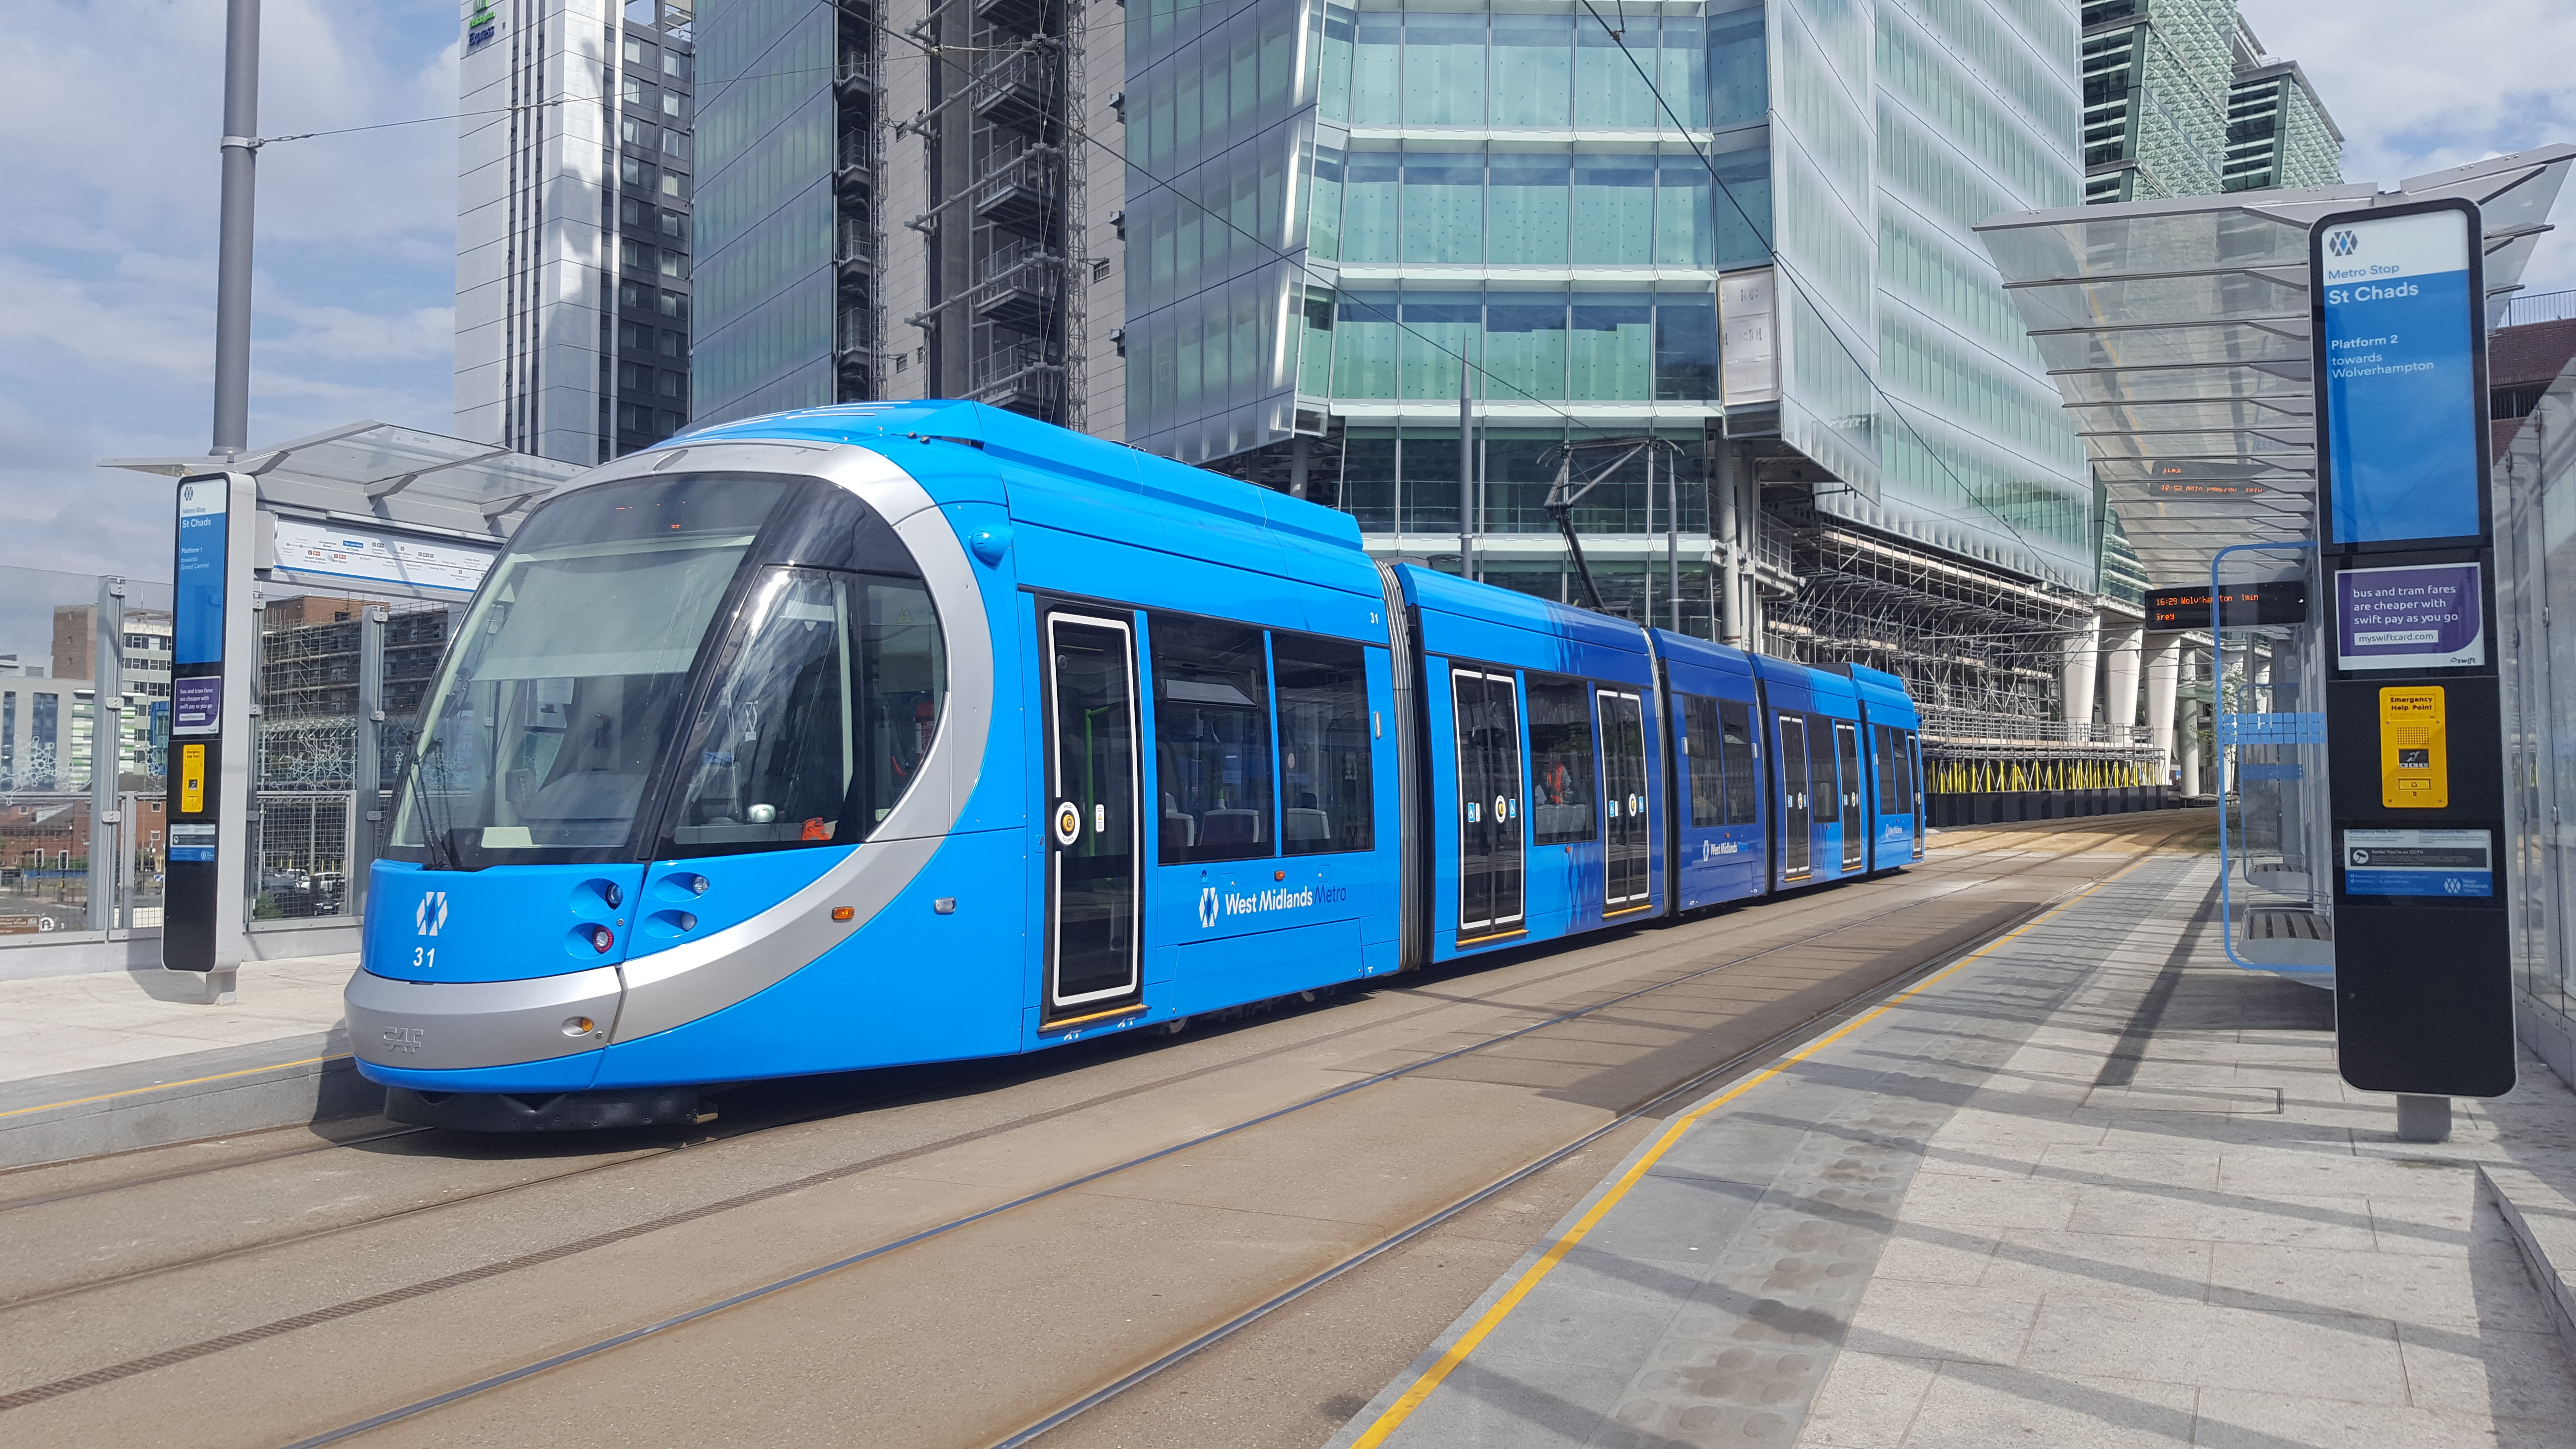 Support package announced for businesses affected by new Metro tram works